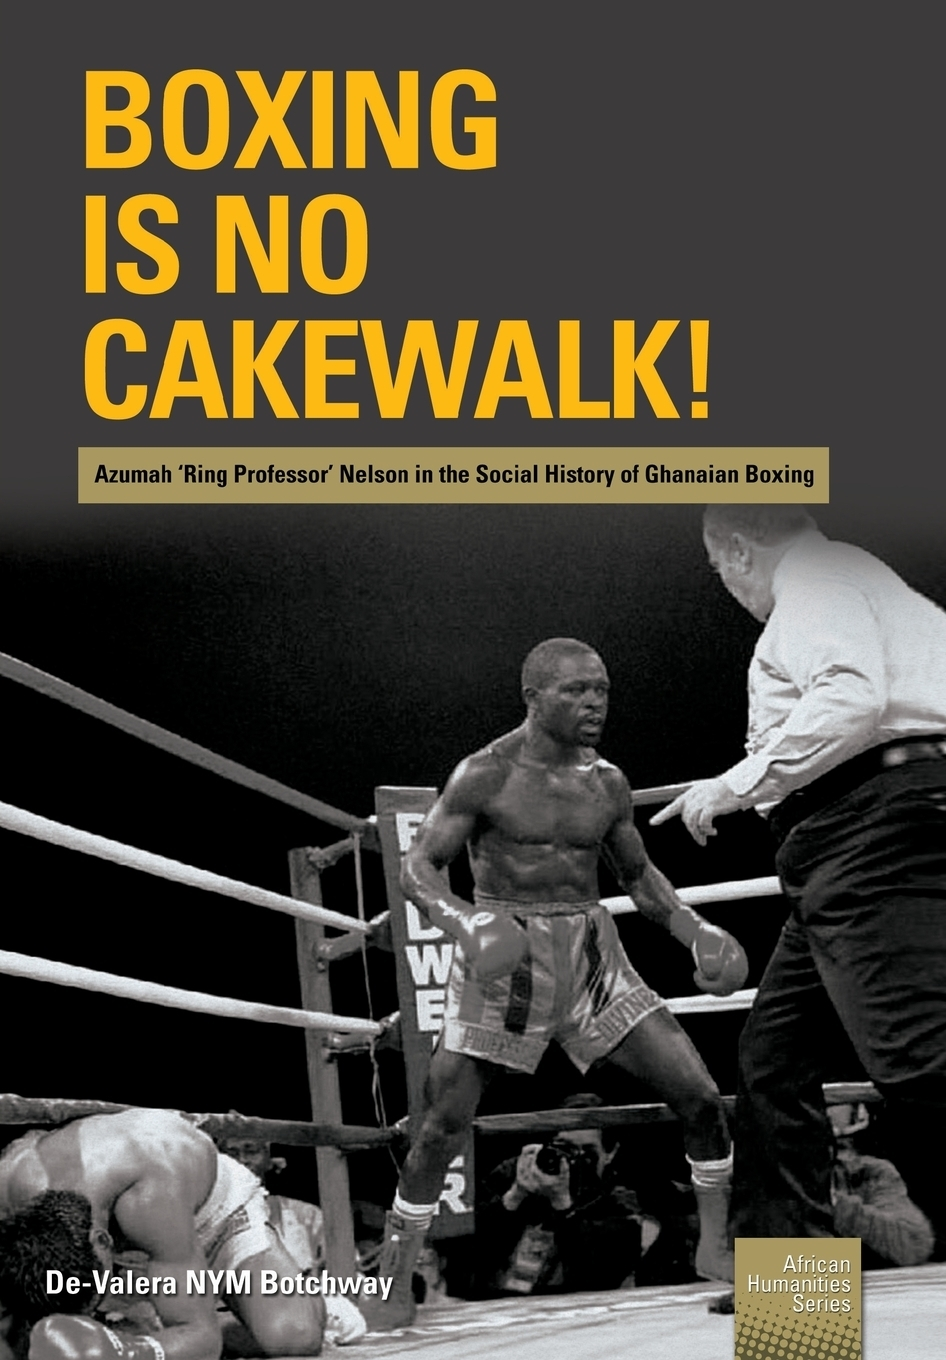 De-Valera NYM Botchway Boxing is no Cakewalk!. Azumah 'Ring Professor' Nelson in the Social History of Ghanaian Boxing a adu boahen albert adu boahen the ghanaian sphinx reflections on the contemporary history of ghana